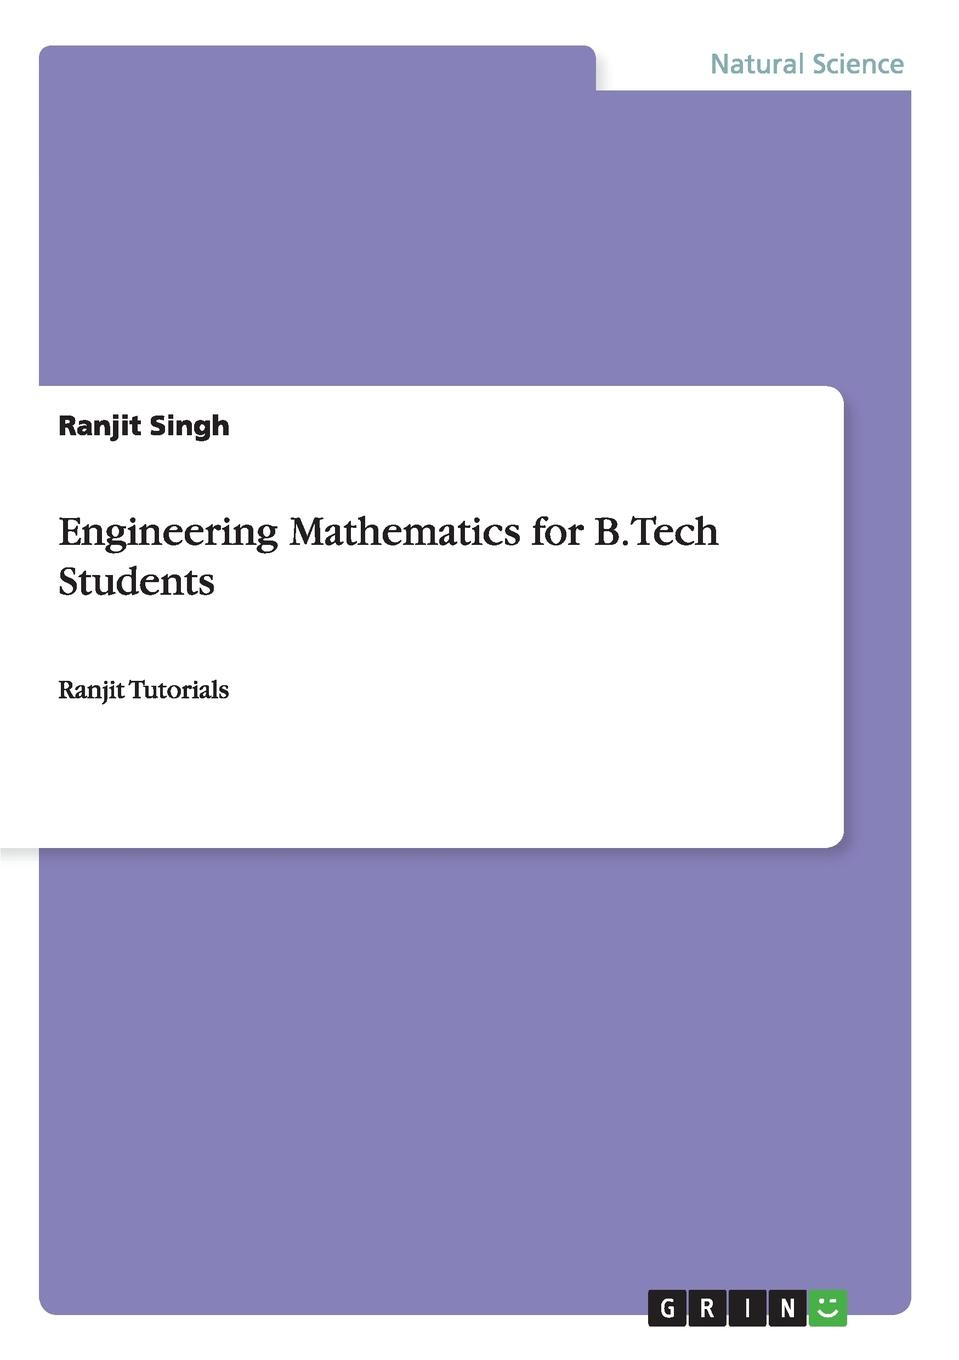 Ranjit Singh Engineering Mathematics for B.Tech Students yahia zare mehrjerdi english for industrial engineering students